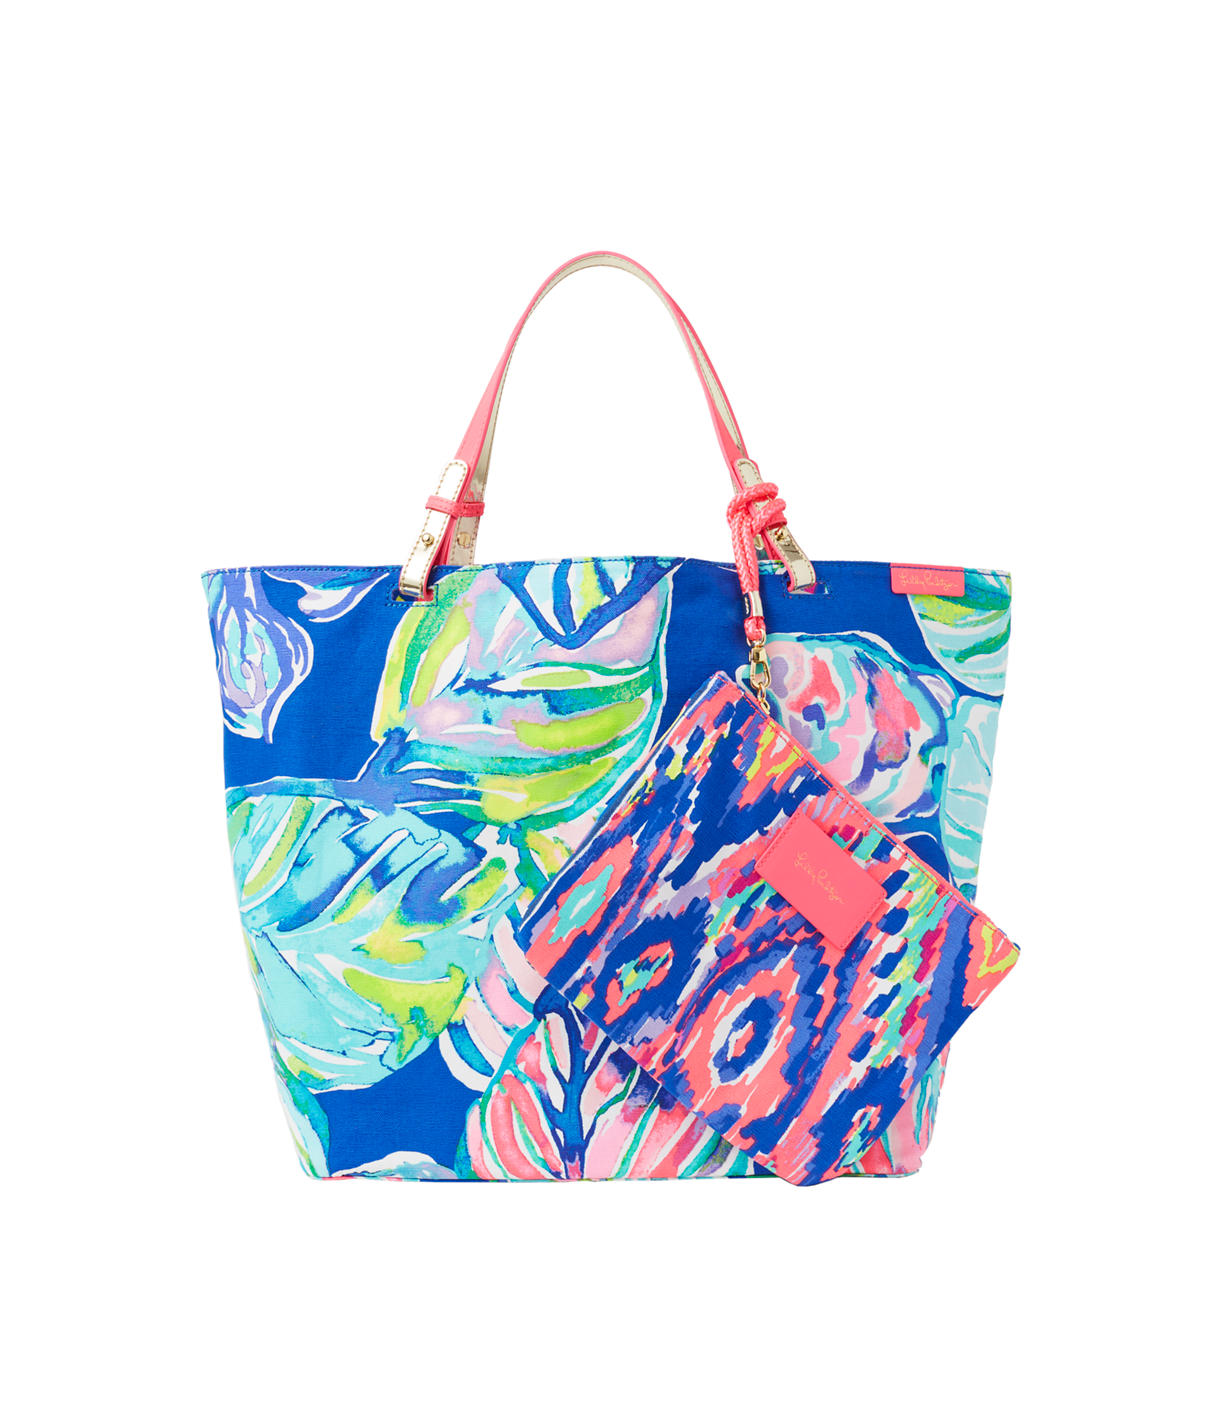 Lilly Pulitzer Beach Bathers Reversible Tote Bag